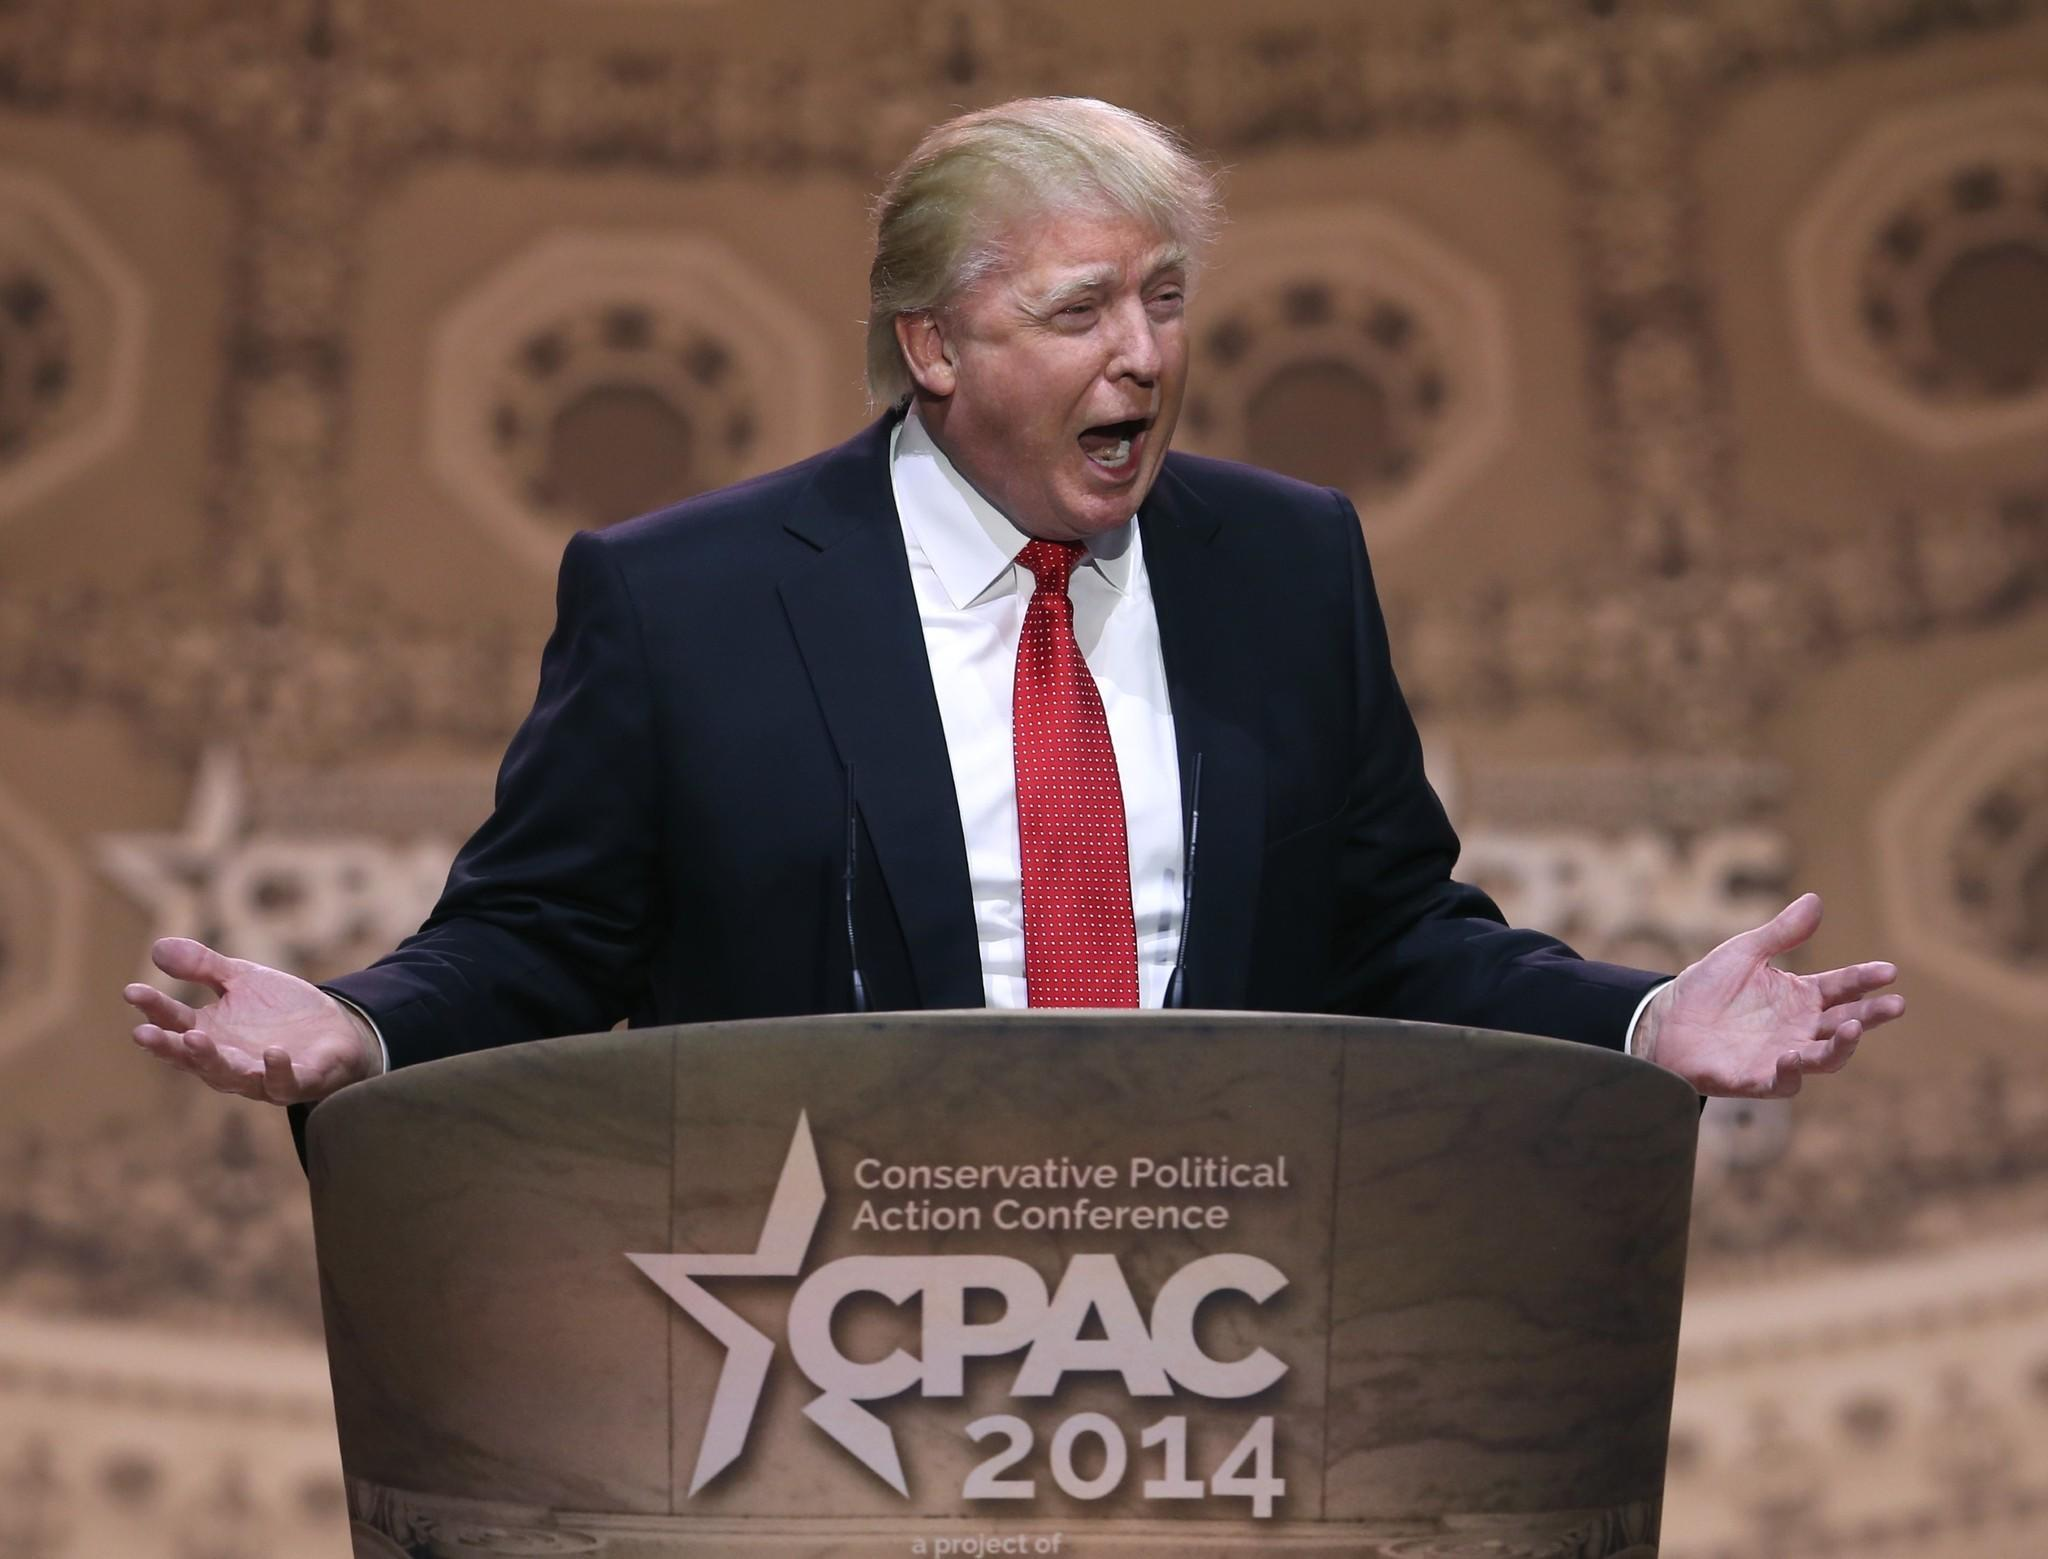 Donald Trump, who spoke without a TelePrompTer, entertained the conservative crowds at the annual CPAC conference of the American Conservative Union on Thursday.